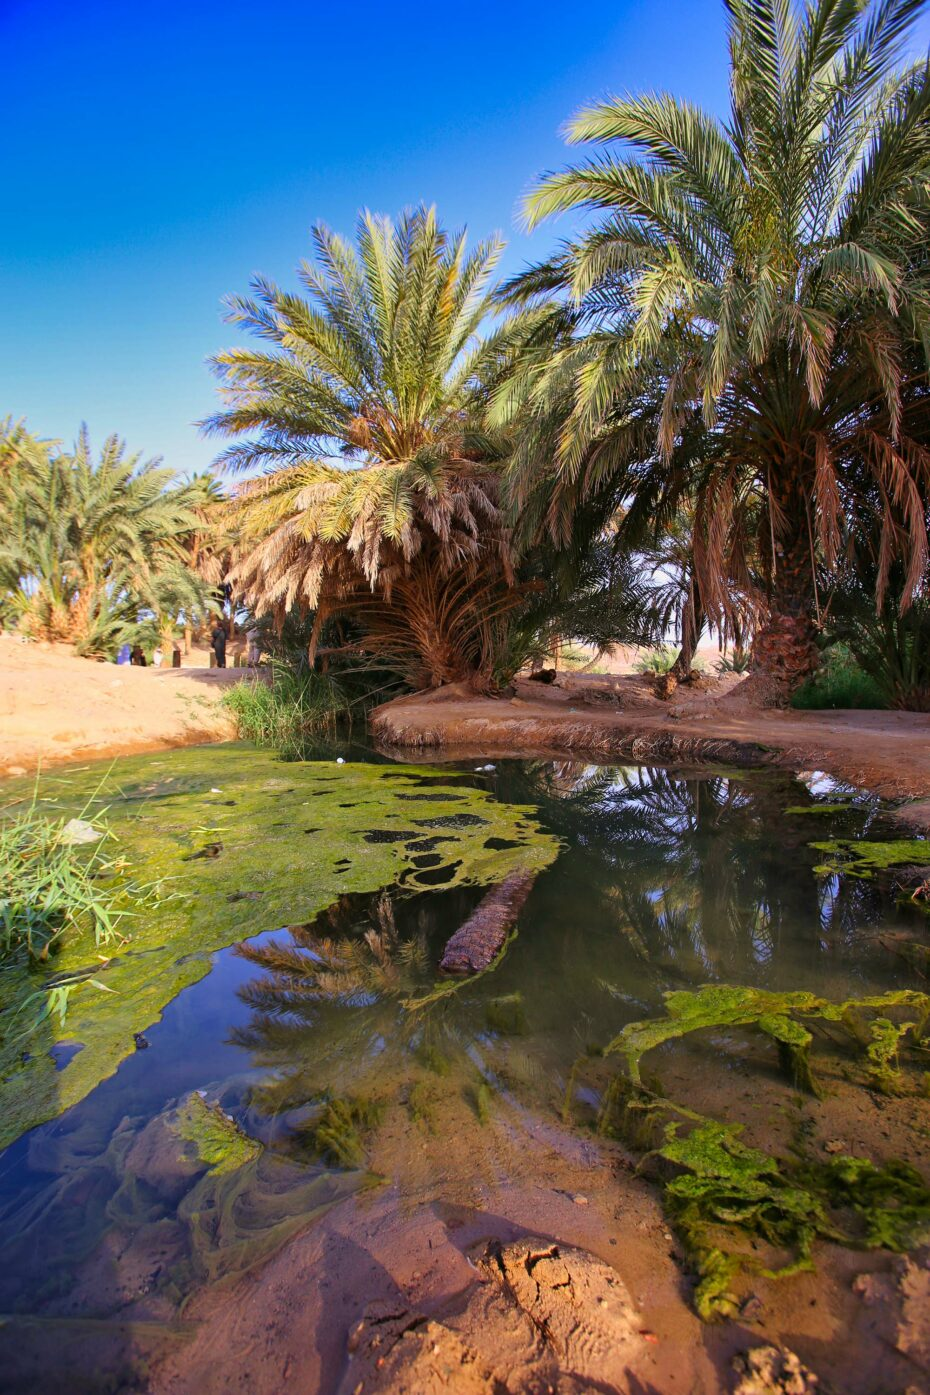 The oasis of Magna which still has a few springs bubbling up out of the ground.